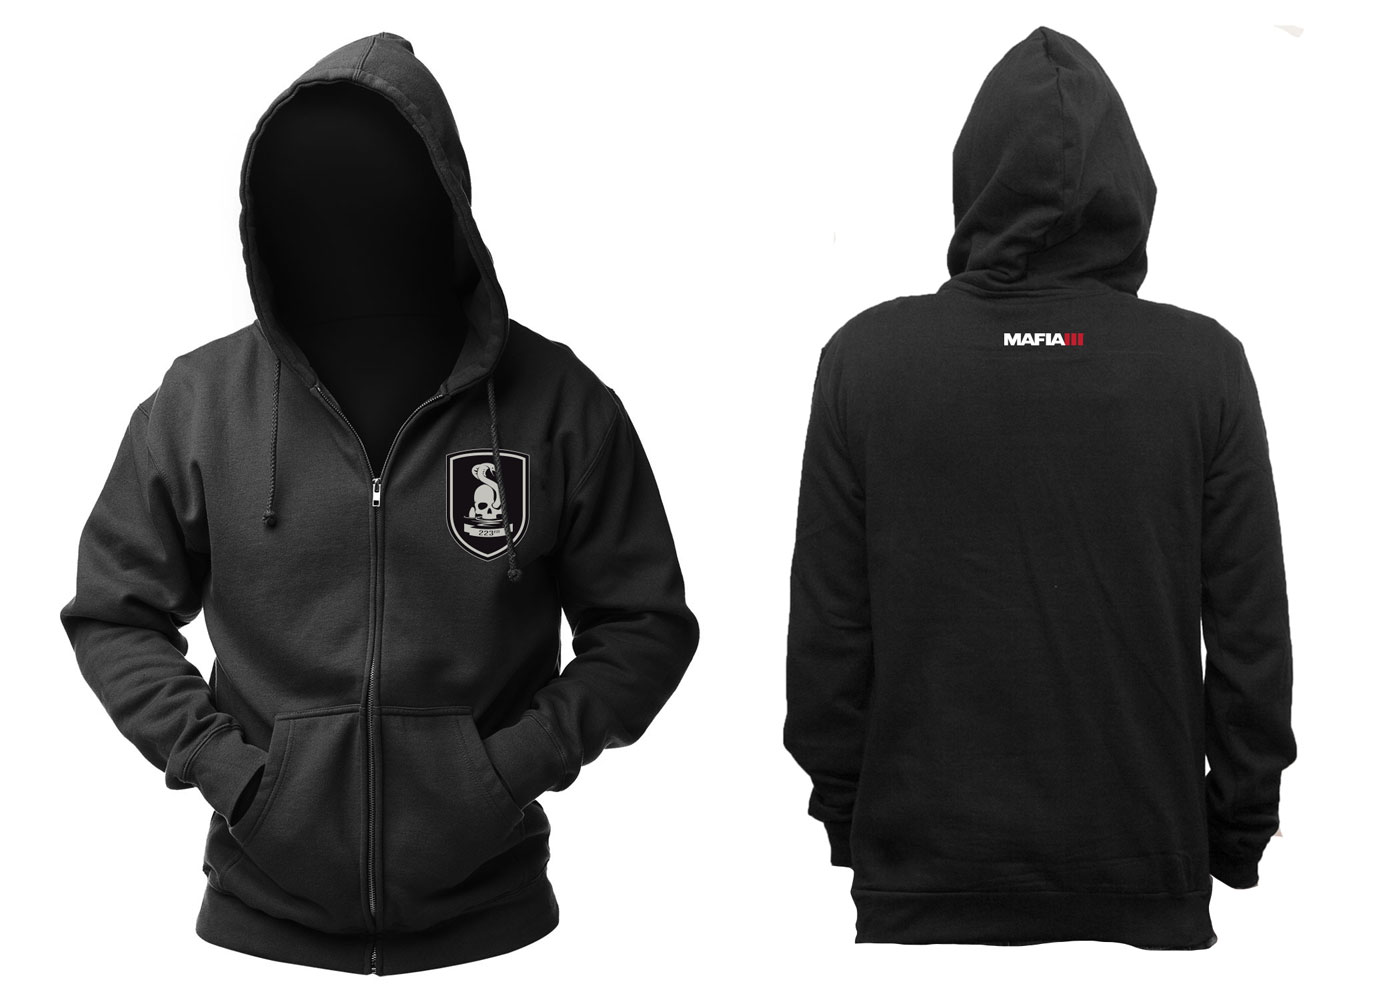 Mafia III Hooded Sweater 223rd Size L